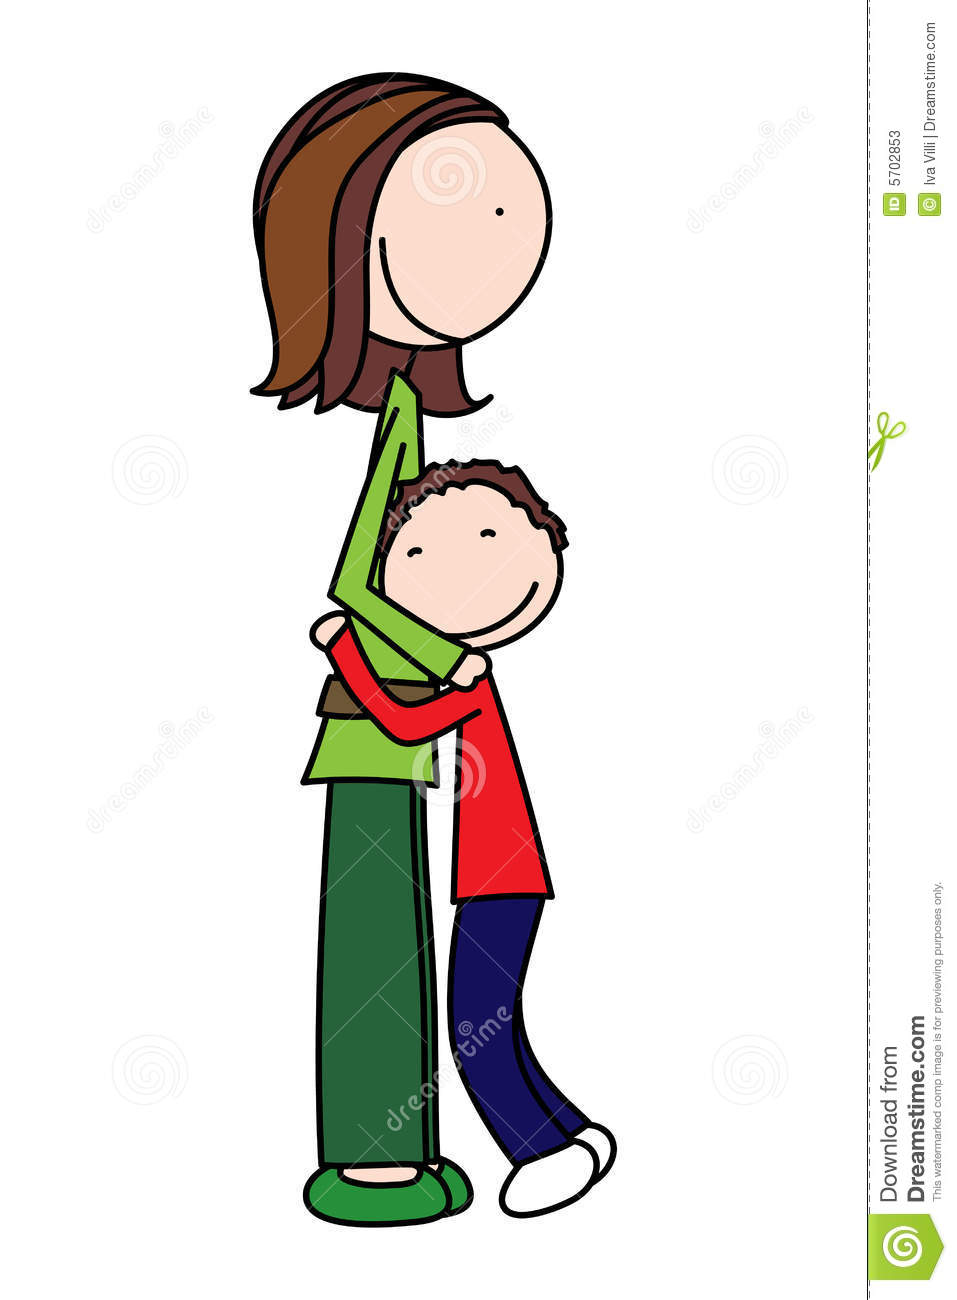 Cuddle clipart mom kid And art Hugging and hugging